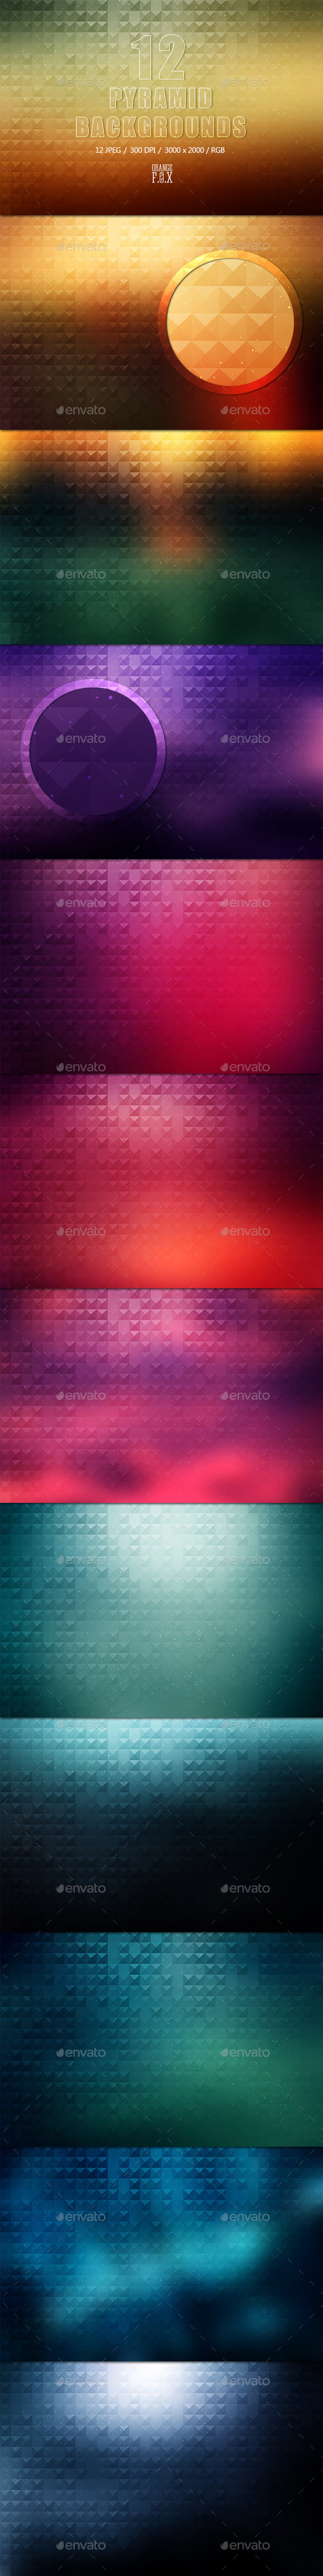 12 pyramid backgrounds_preview.jpg